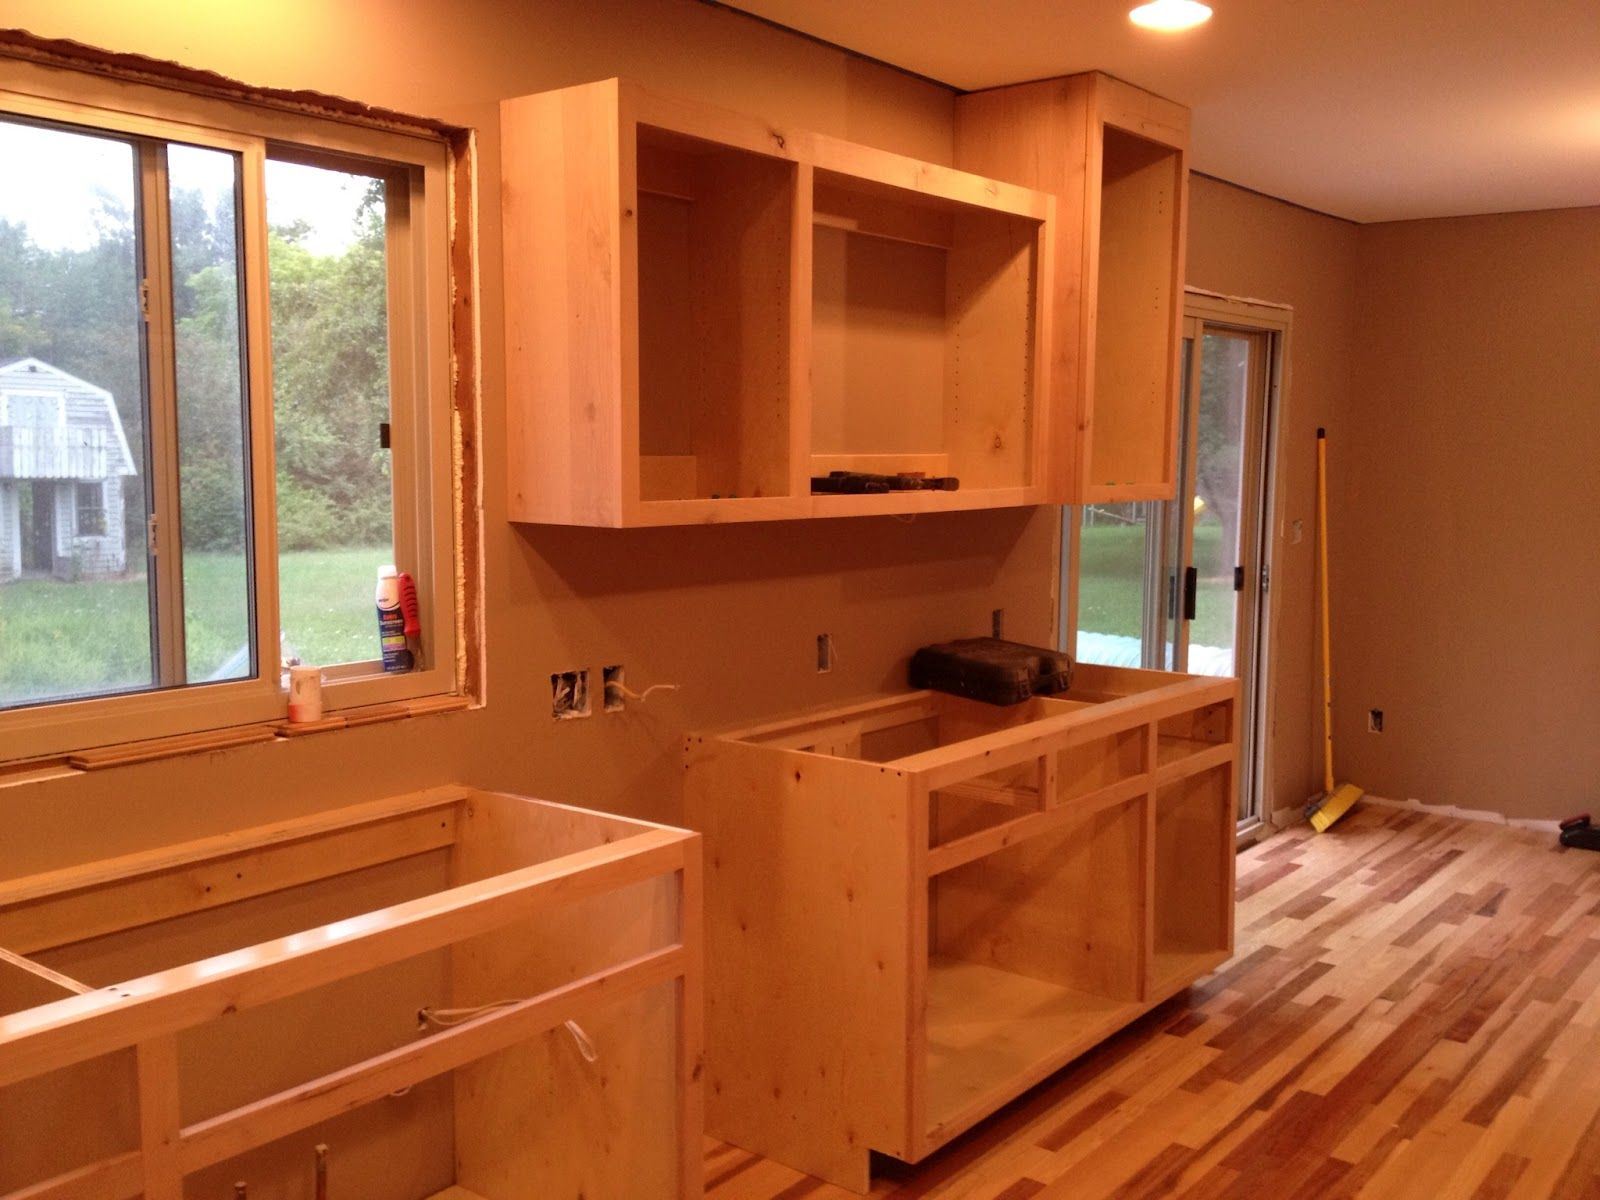 Build your own kitchen Wallpaper | Building kitchen cabinets ...